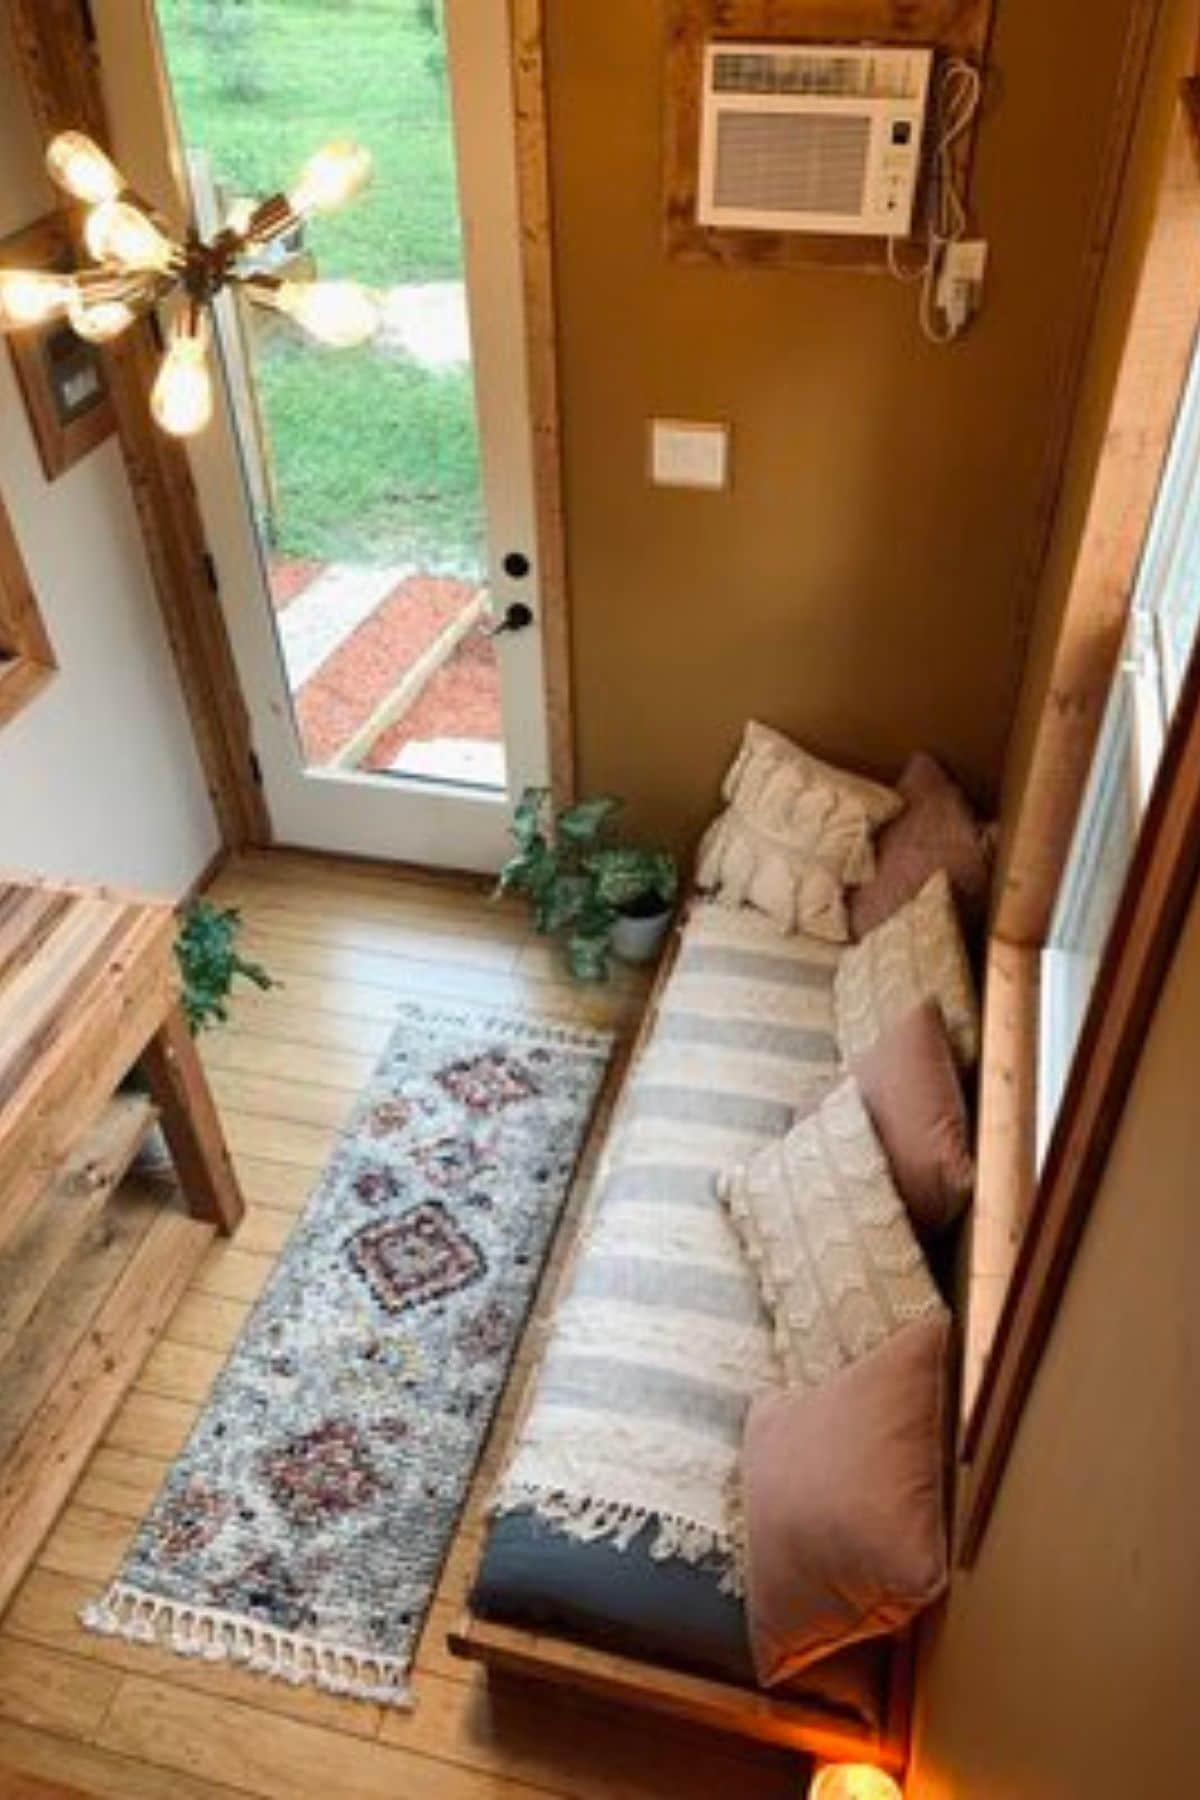 View down to sofa from loft